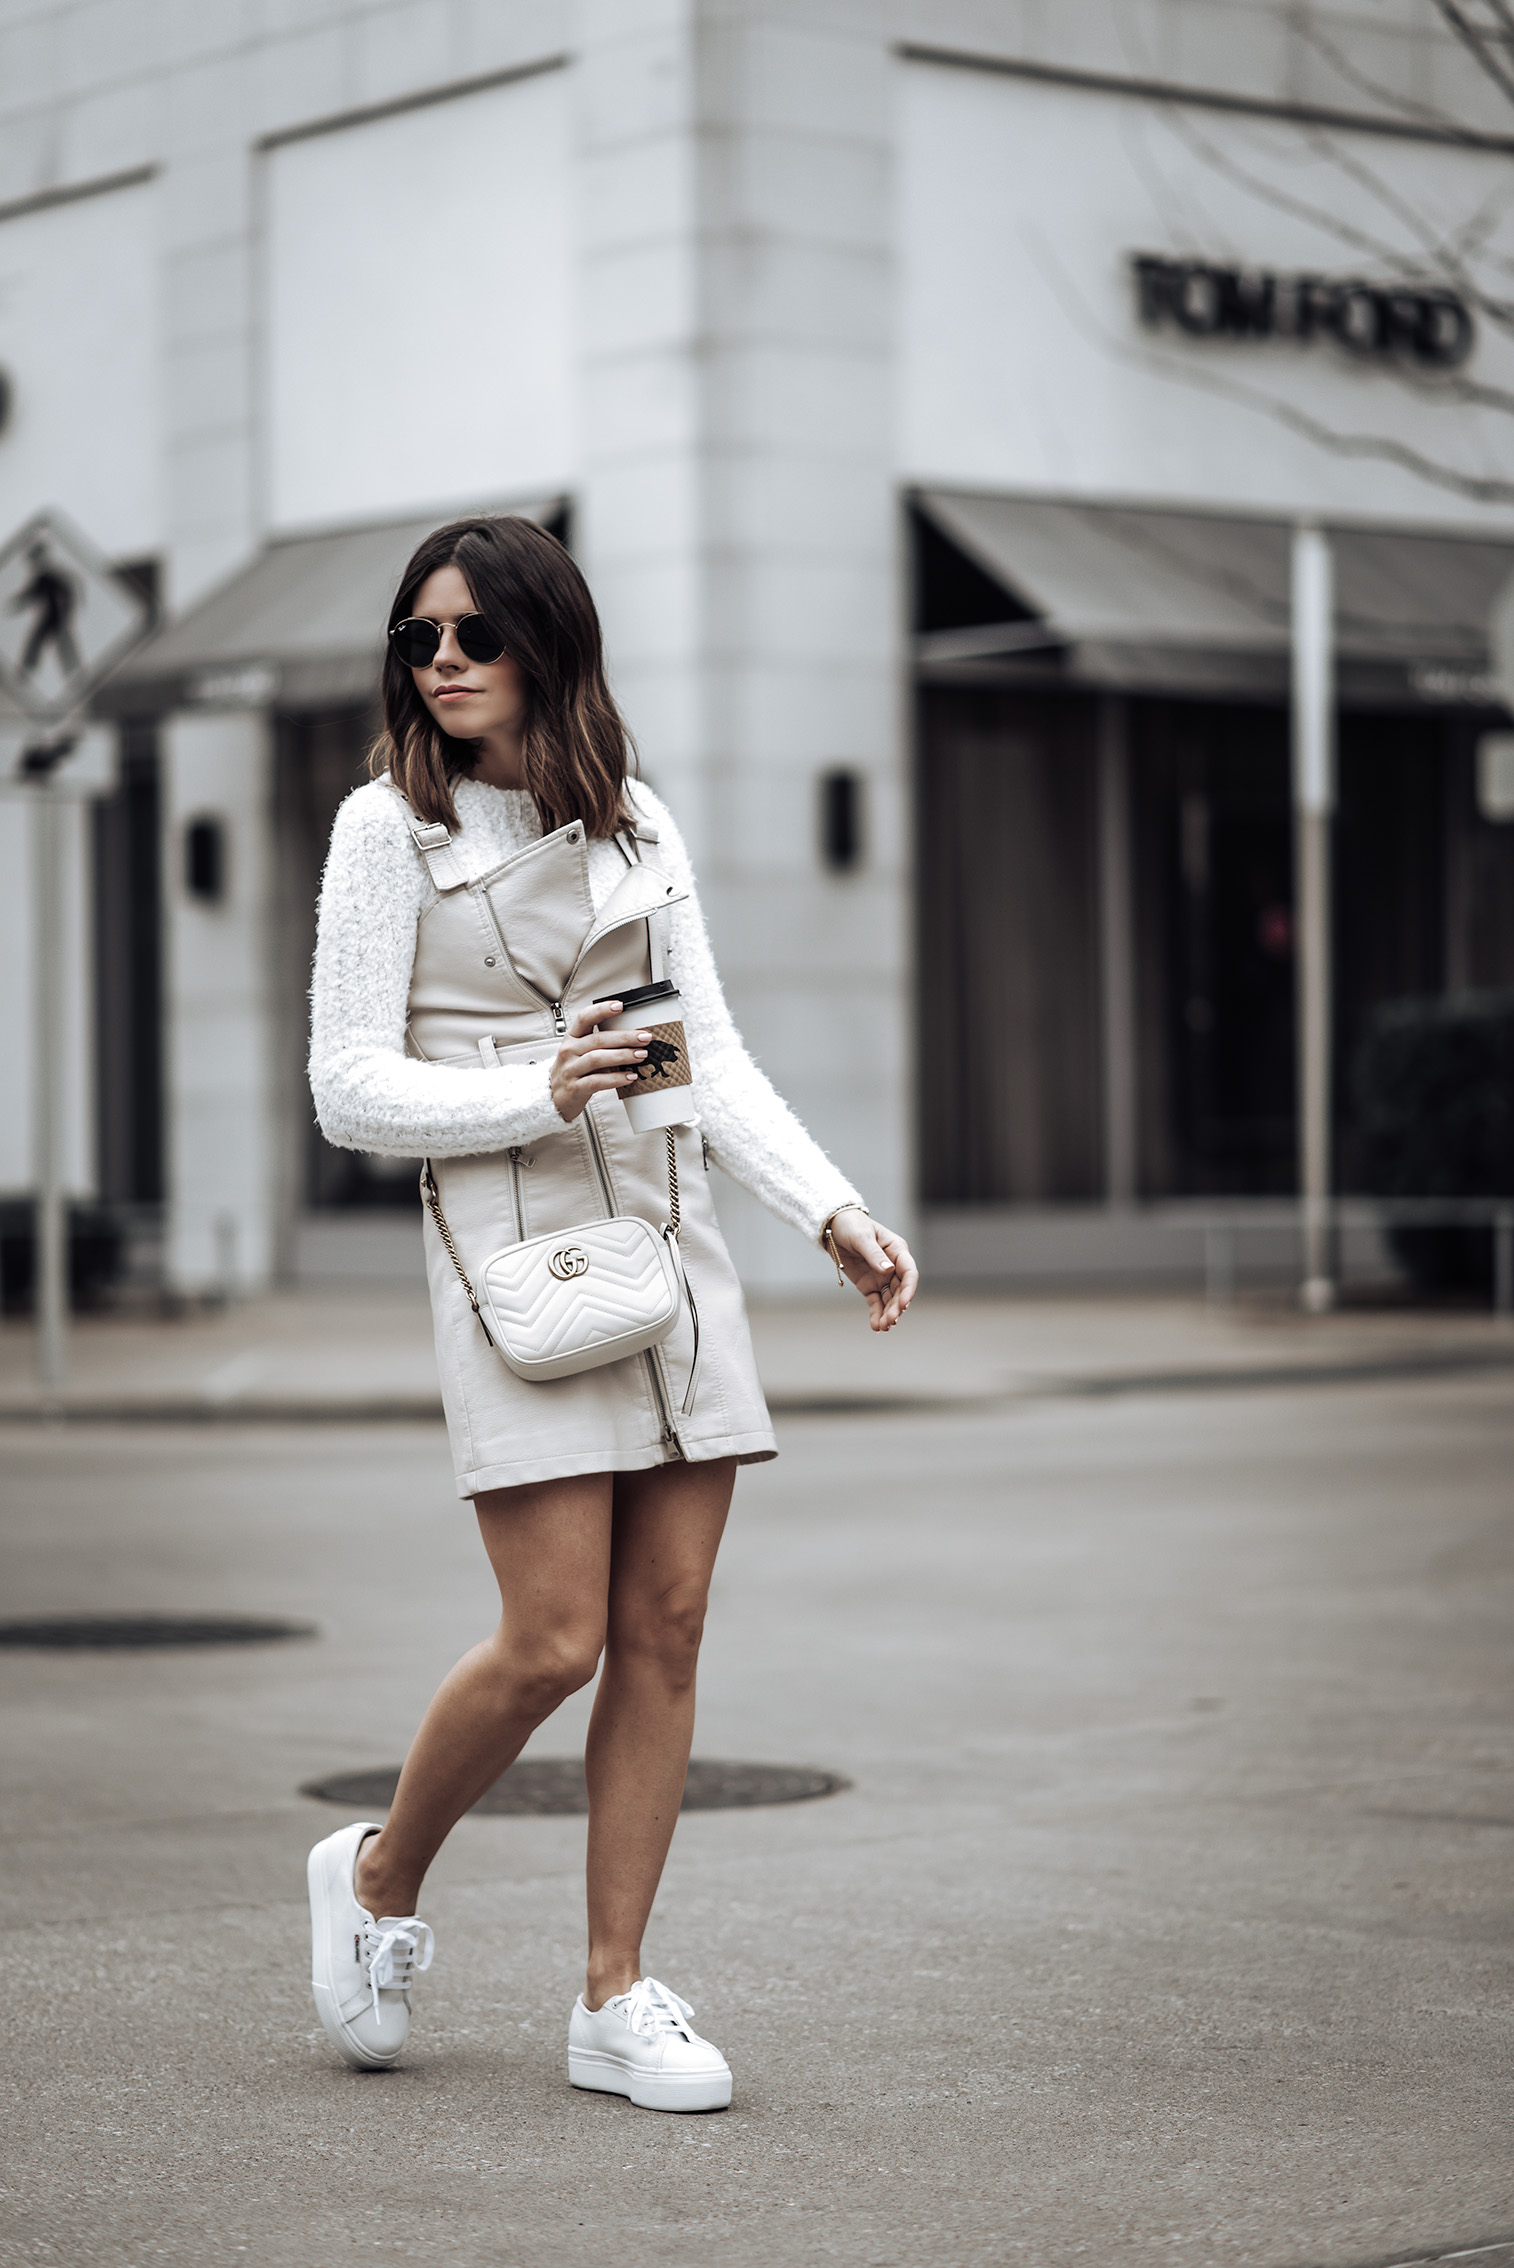 Eva Biker Mini Dress Size small | Fuzzy Knit Sweater (runs small, wearing a medium) | Superga Platform Sneakers | GG Marmont Gucci Bag | Sunnies #streetstyle2018 #sneakeroutfits